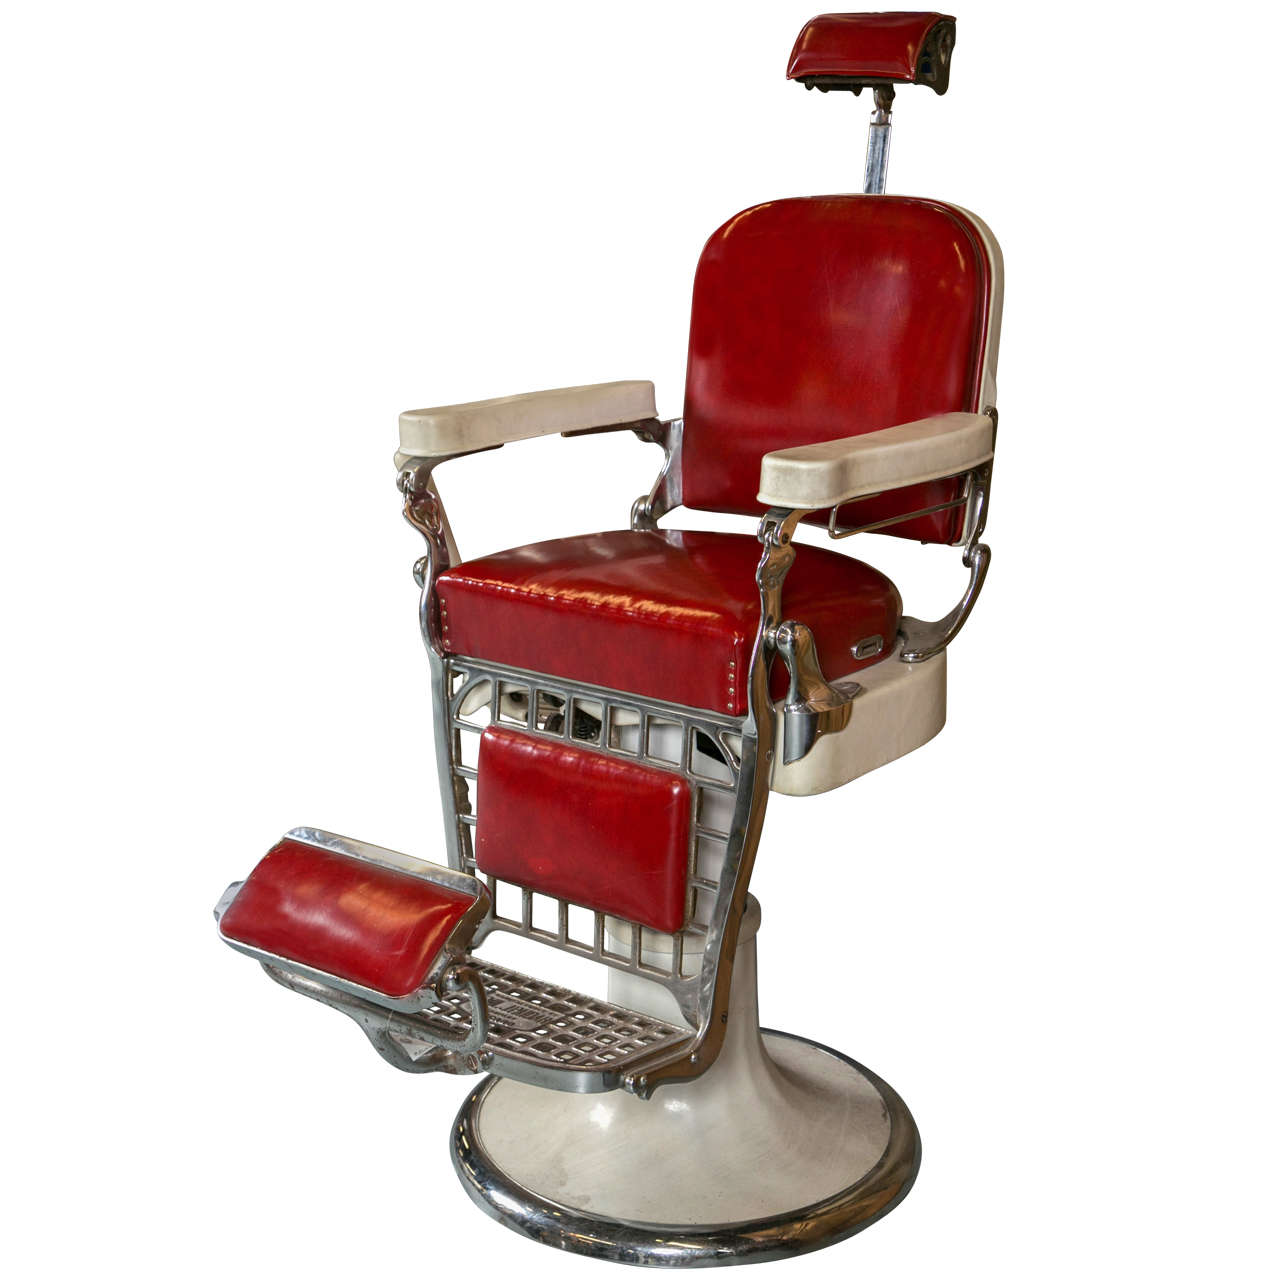 Antique Emil J. Paidar Barber Chair For Sale - Antique Emil J. Paidar Barber Chair At 1stdibs